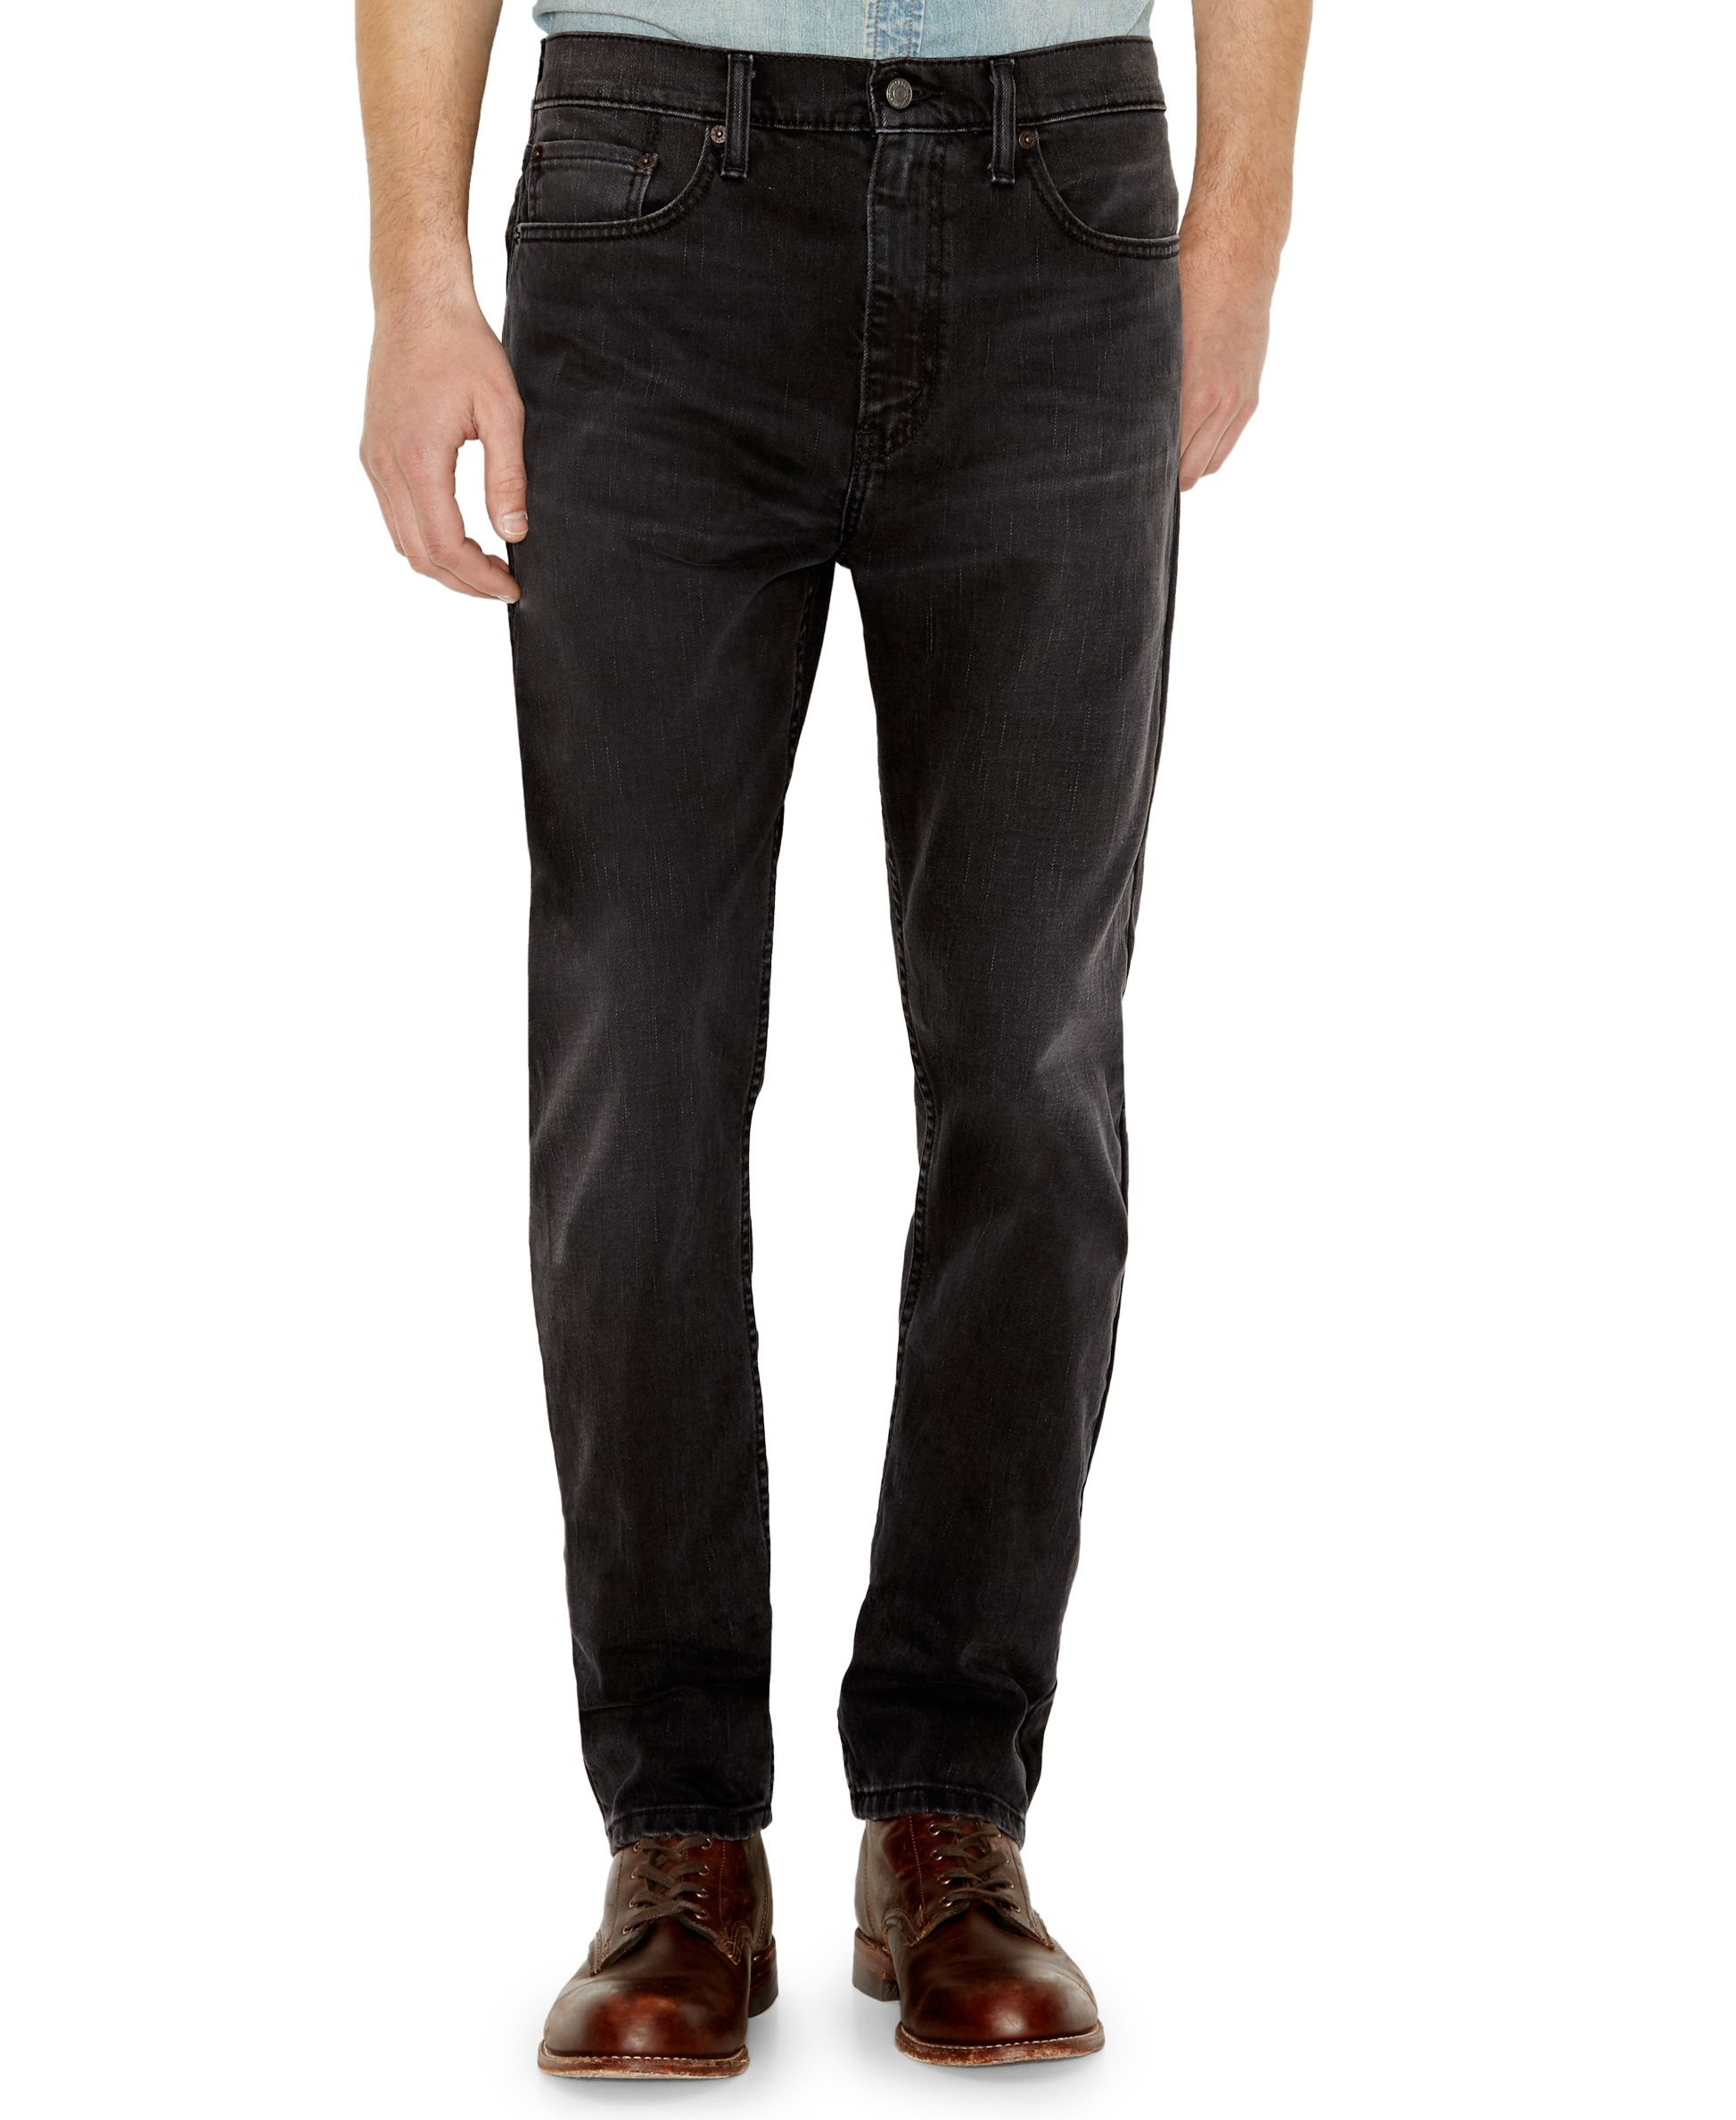 b7a3061a0d2 Levi's 522 Slim-Fit Tapered Jeans, Mariposa Wash | Products ...